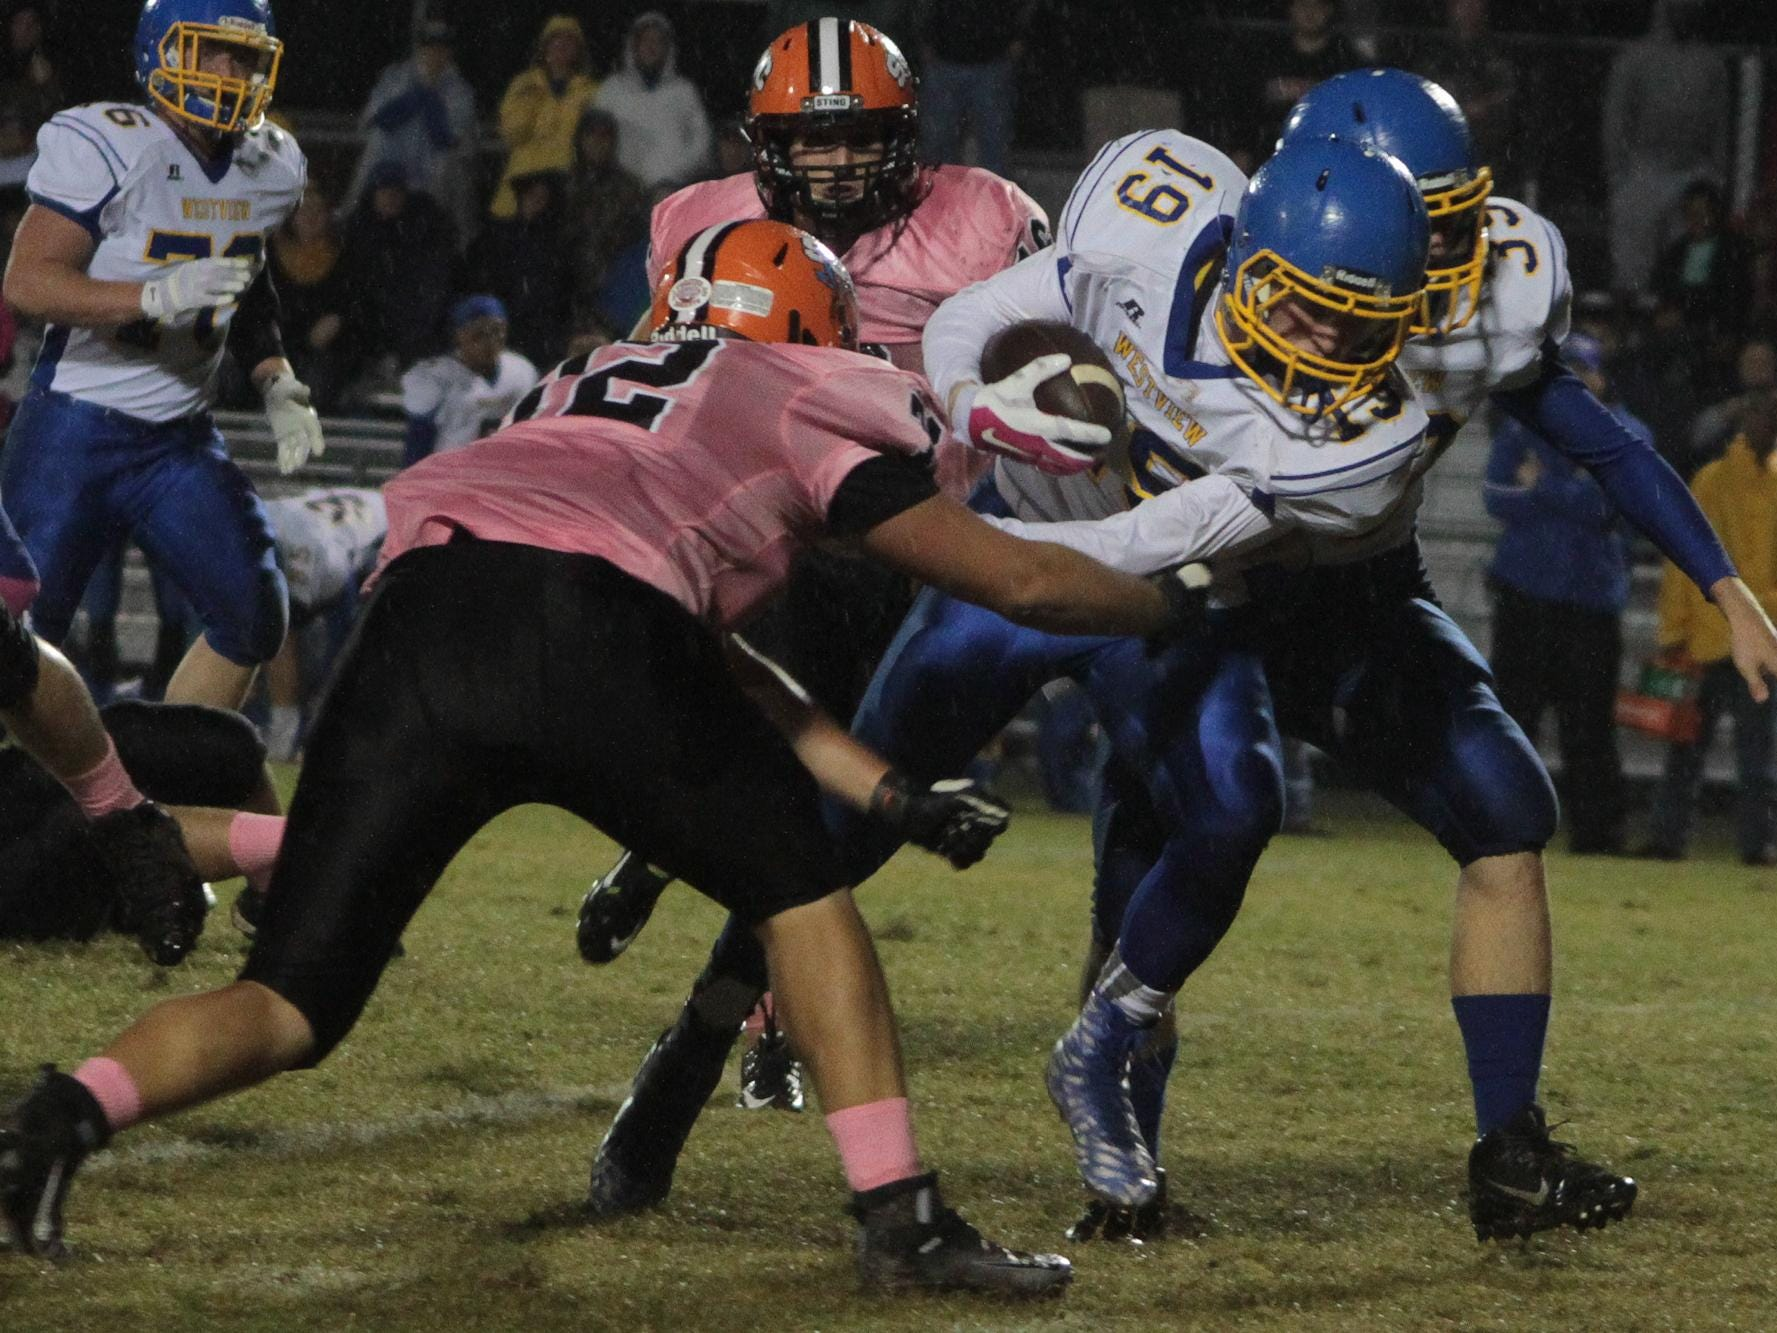 Westview's Parker Beal (19) pushes past South Gibson's Krayton Woods (72) to carry the ball a few more yards for the Chargers.